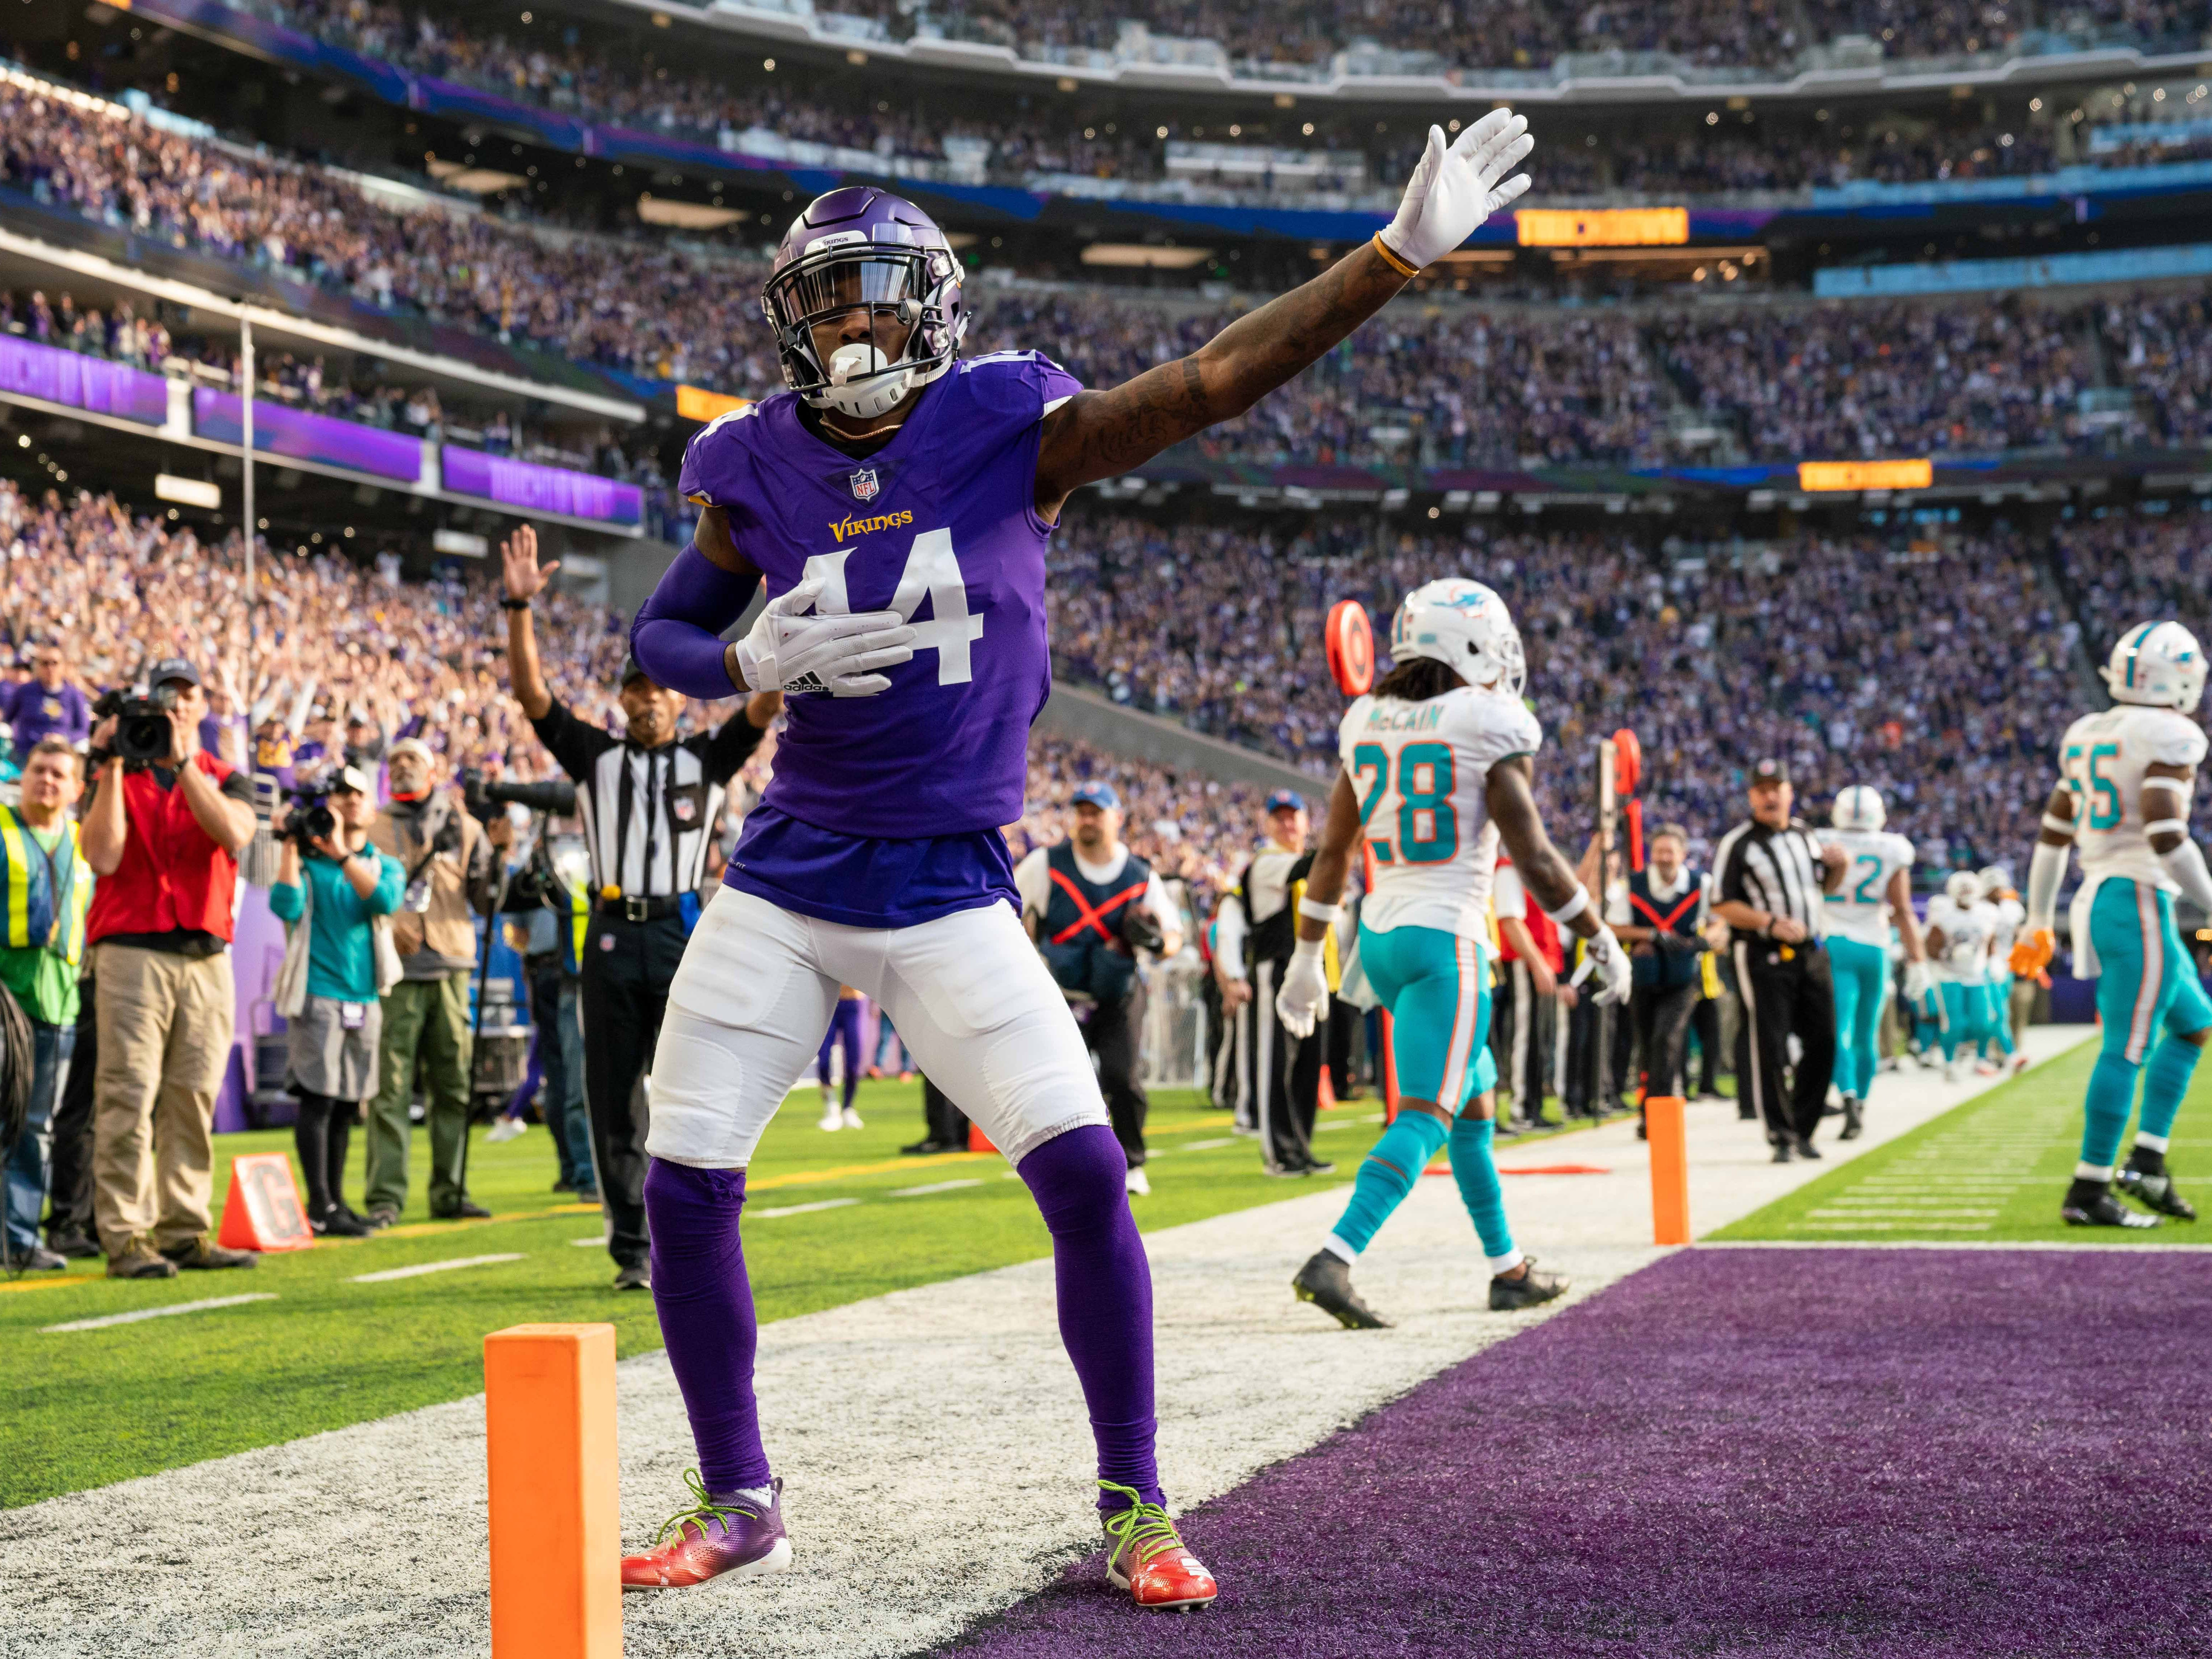 Vikings wide receiver Stefon Diggs celebrates his touchdown in the first quarter against the Dolphins.